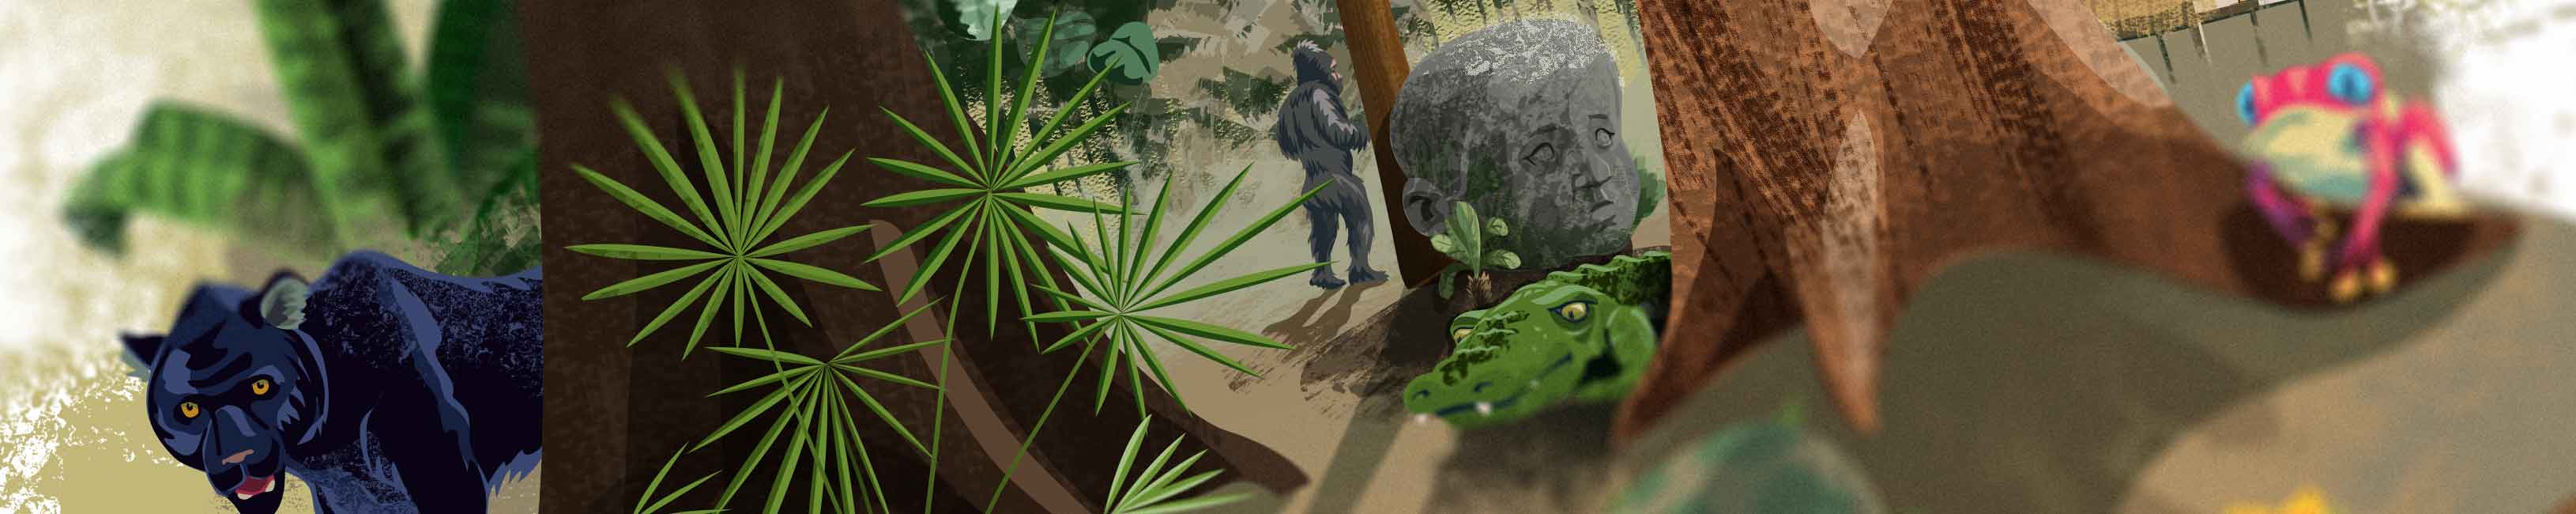 the jungle is a busy place with ruins, crocodiles, panthers and more